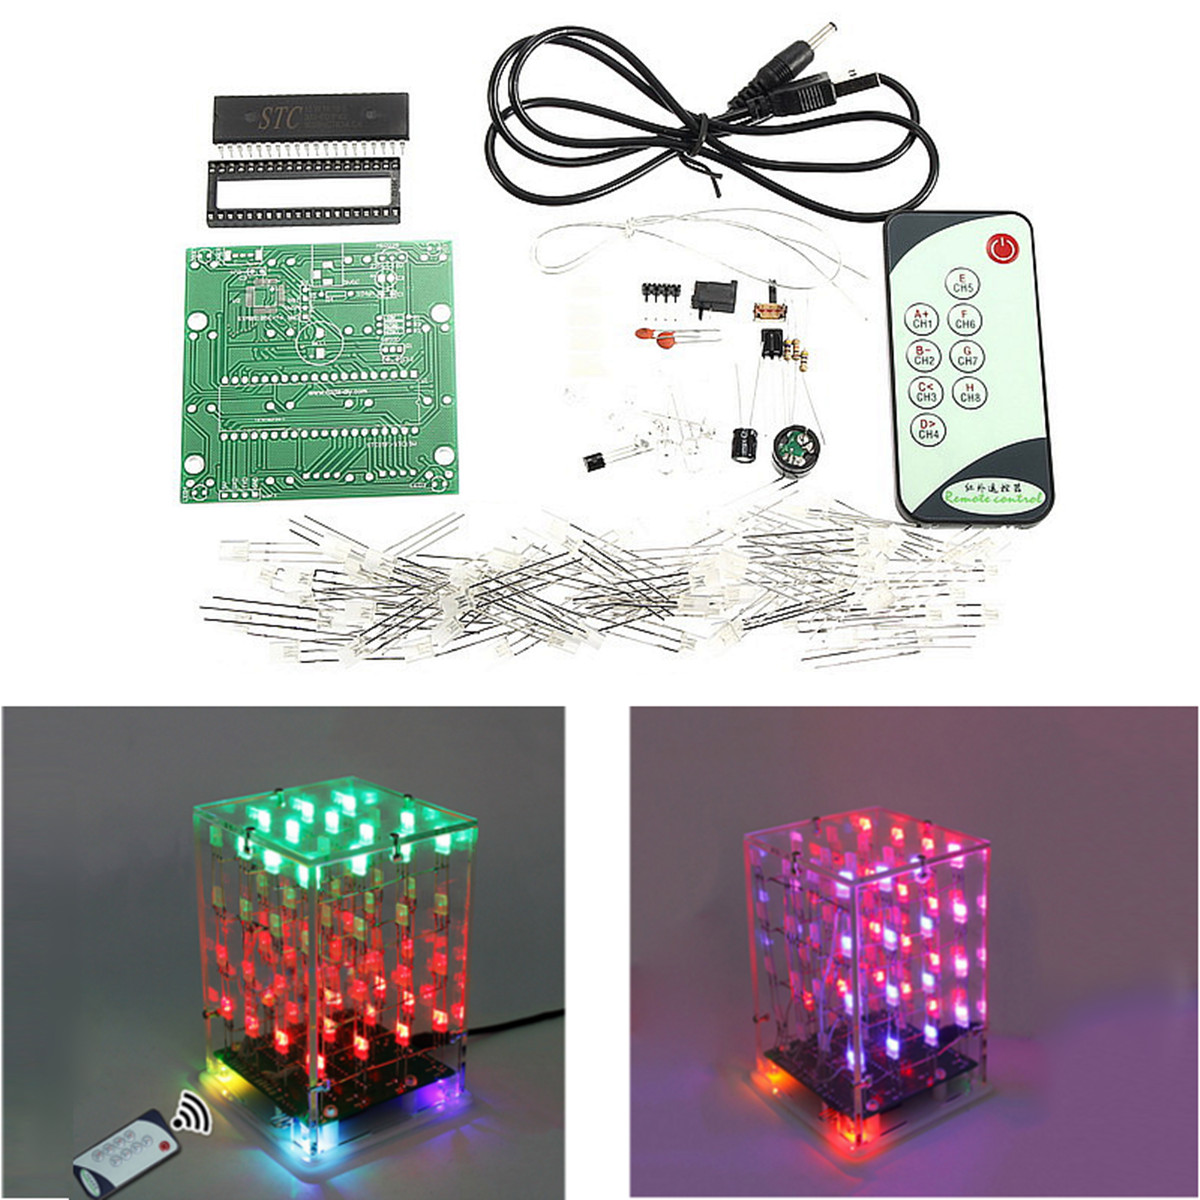 Transparent Acrylic Cube Shell For 4x4x4 3D LightSquared VC best LED Cube